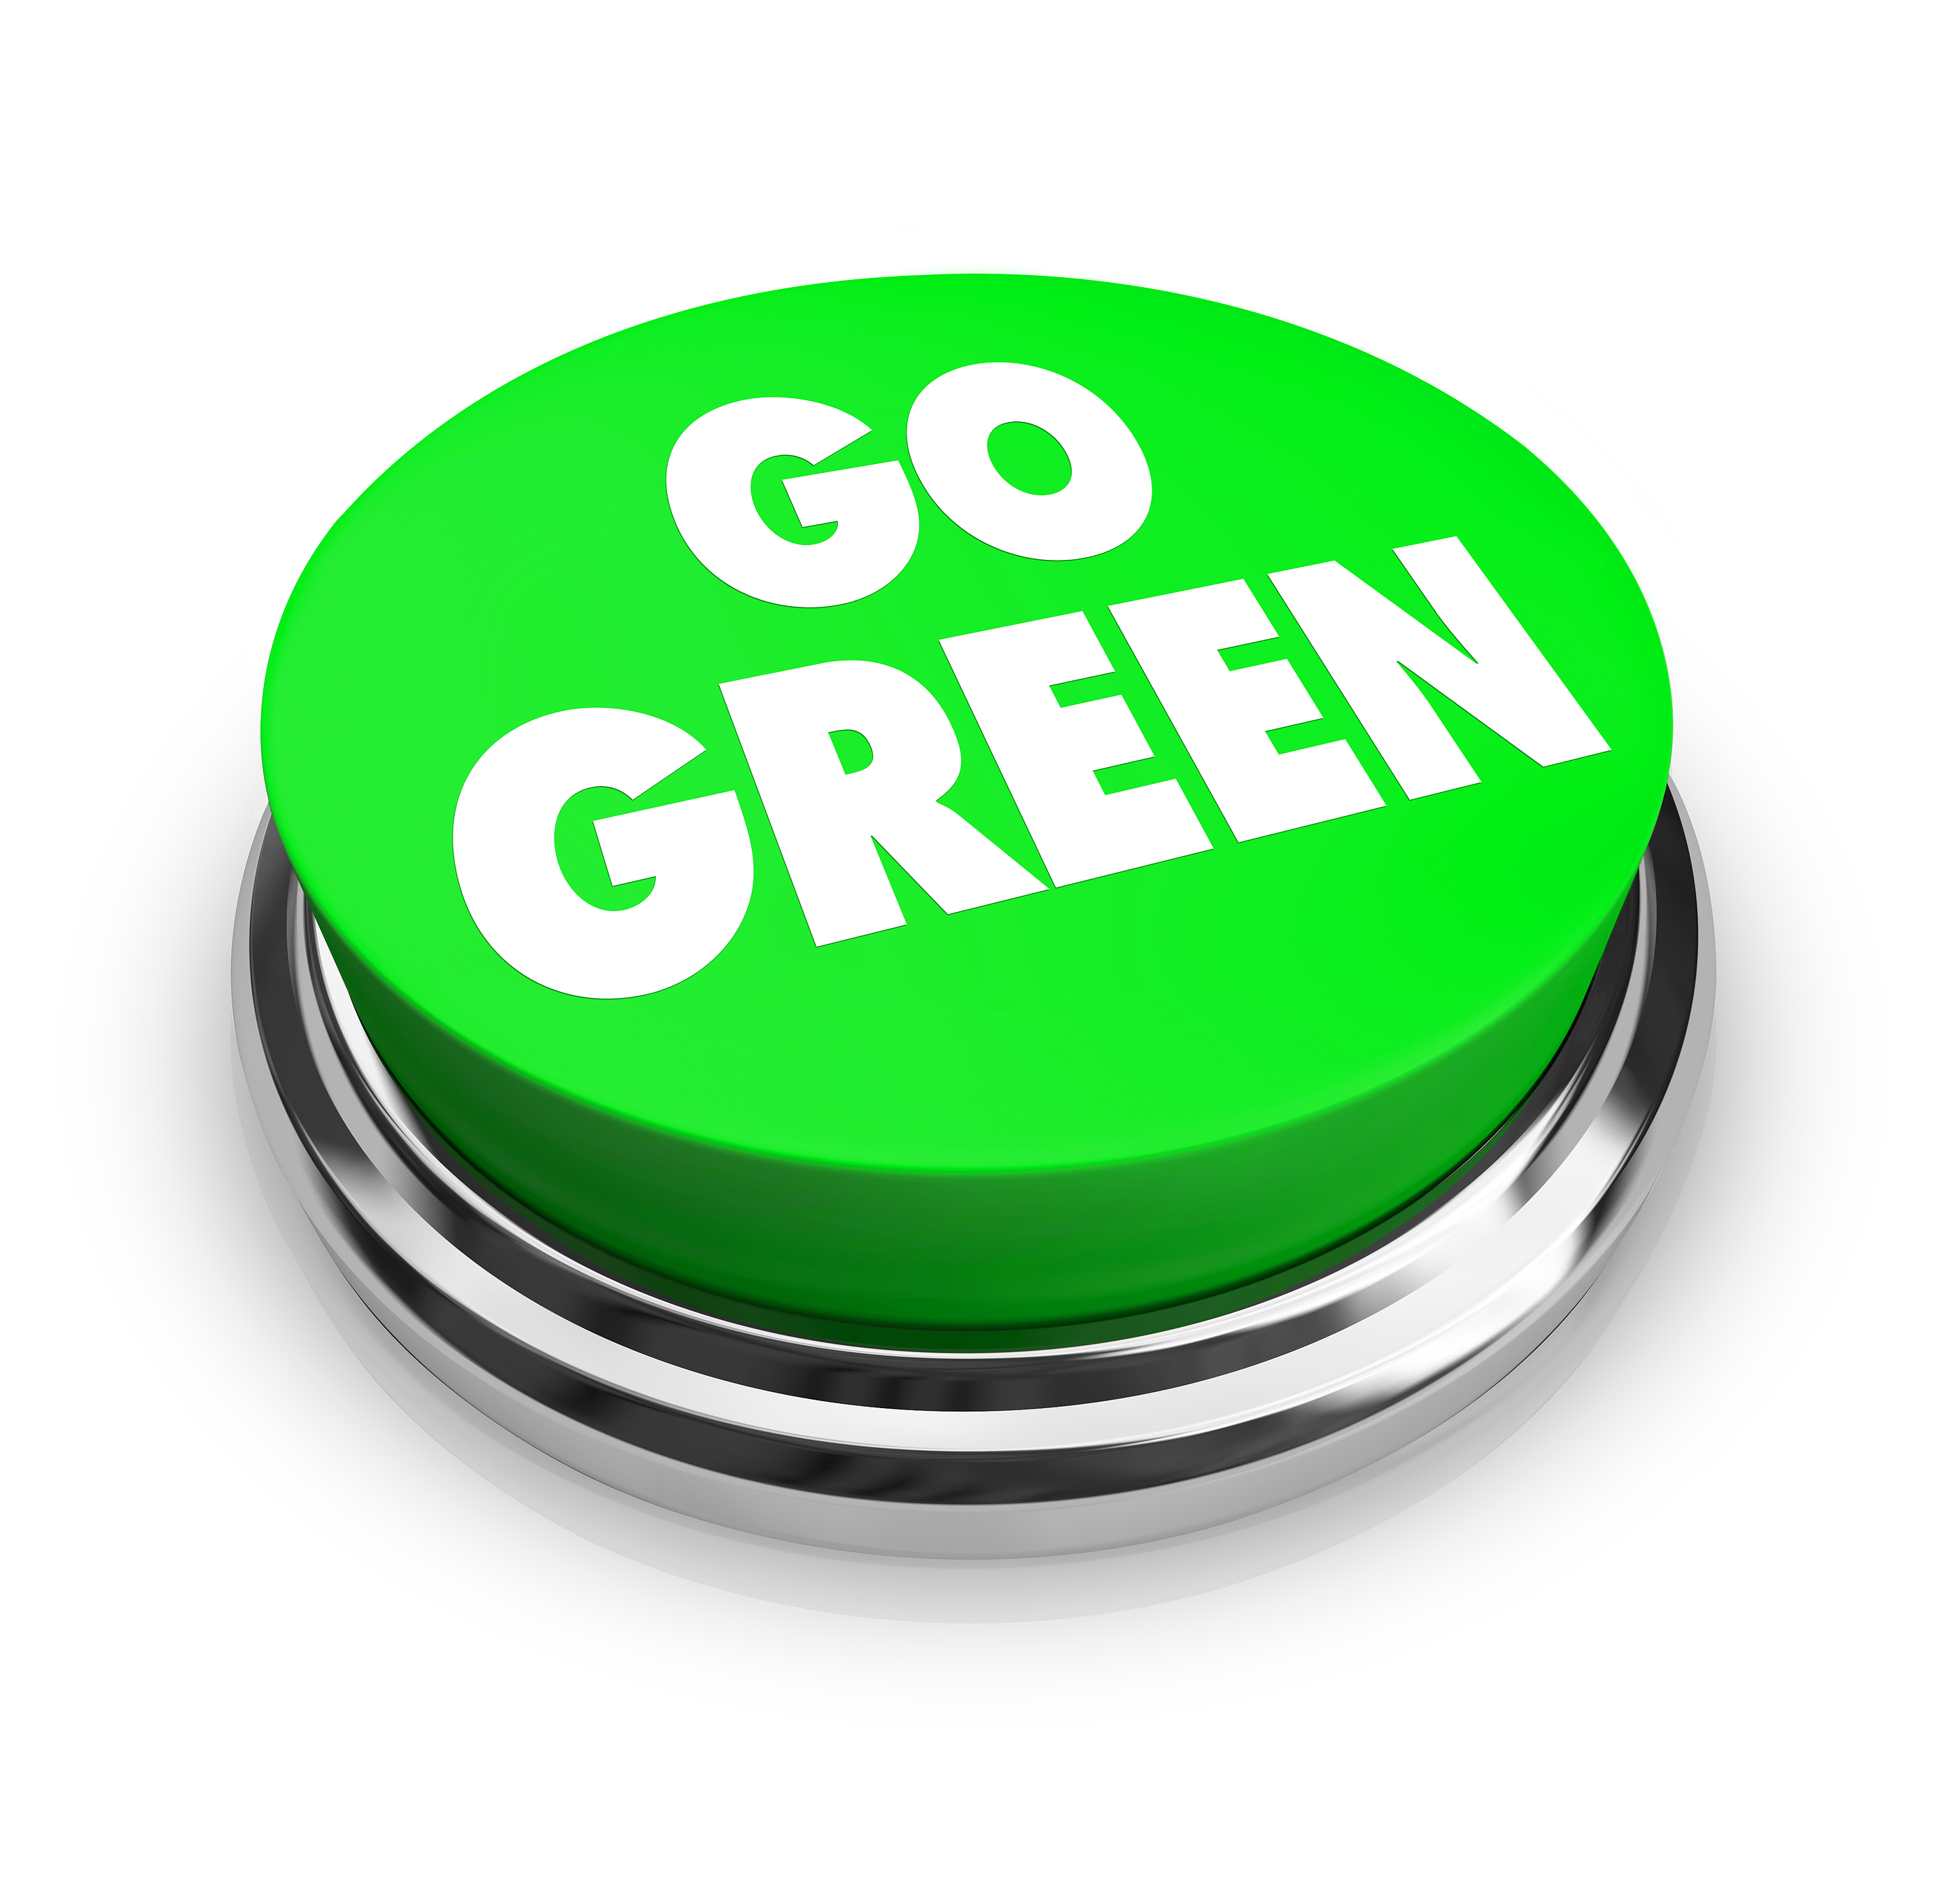 go green clip art pictures - photo #16